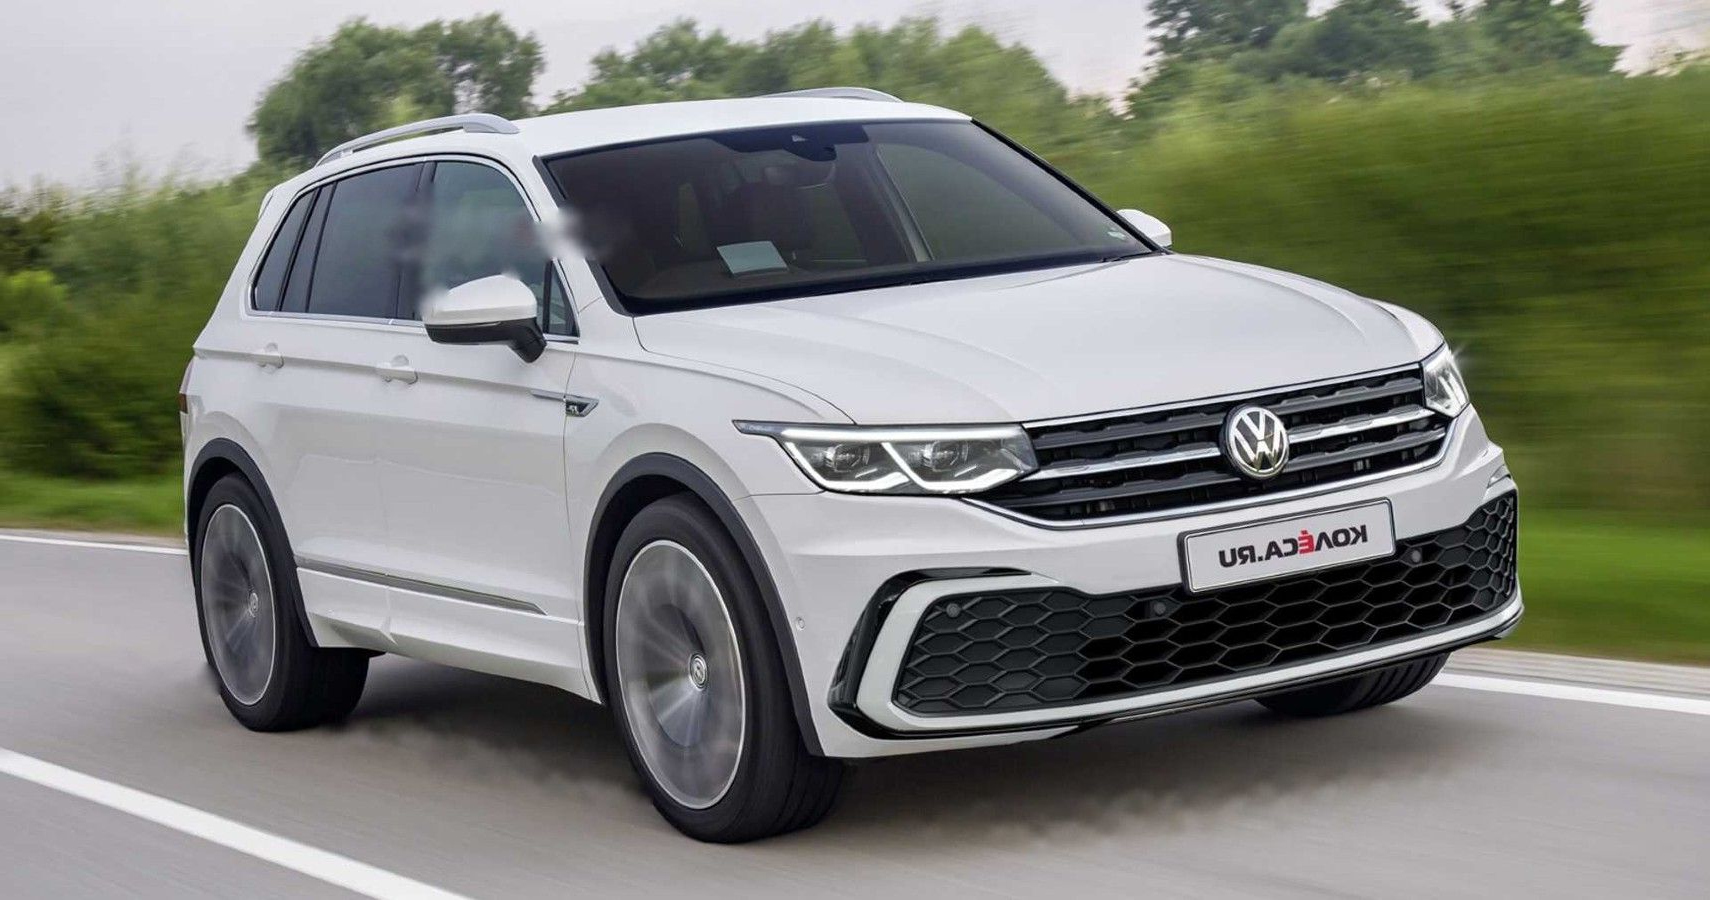 Spy Pics Reveal 2021 Vw Tiguan With Hybrid Tech | Hotcars